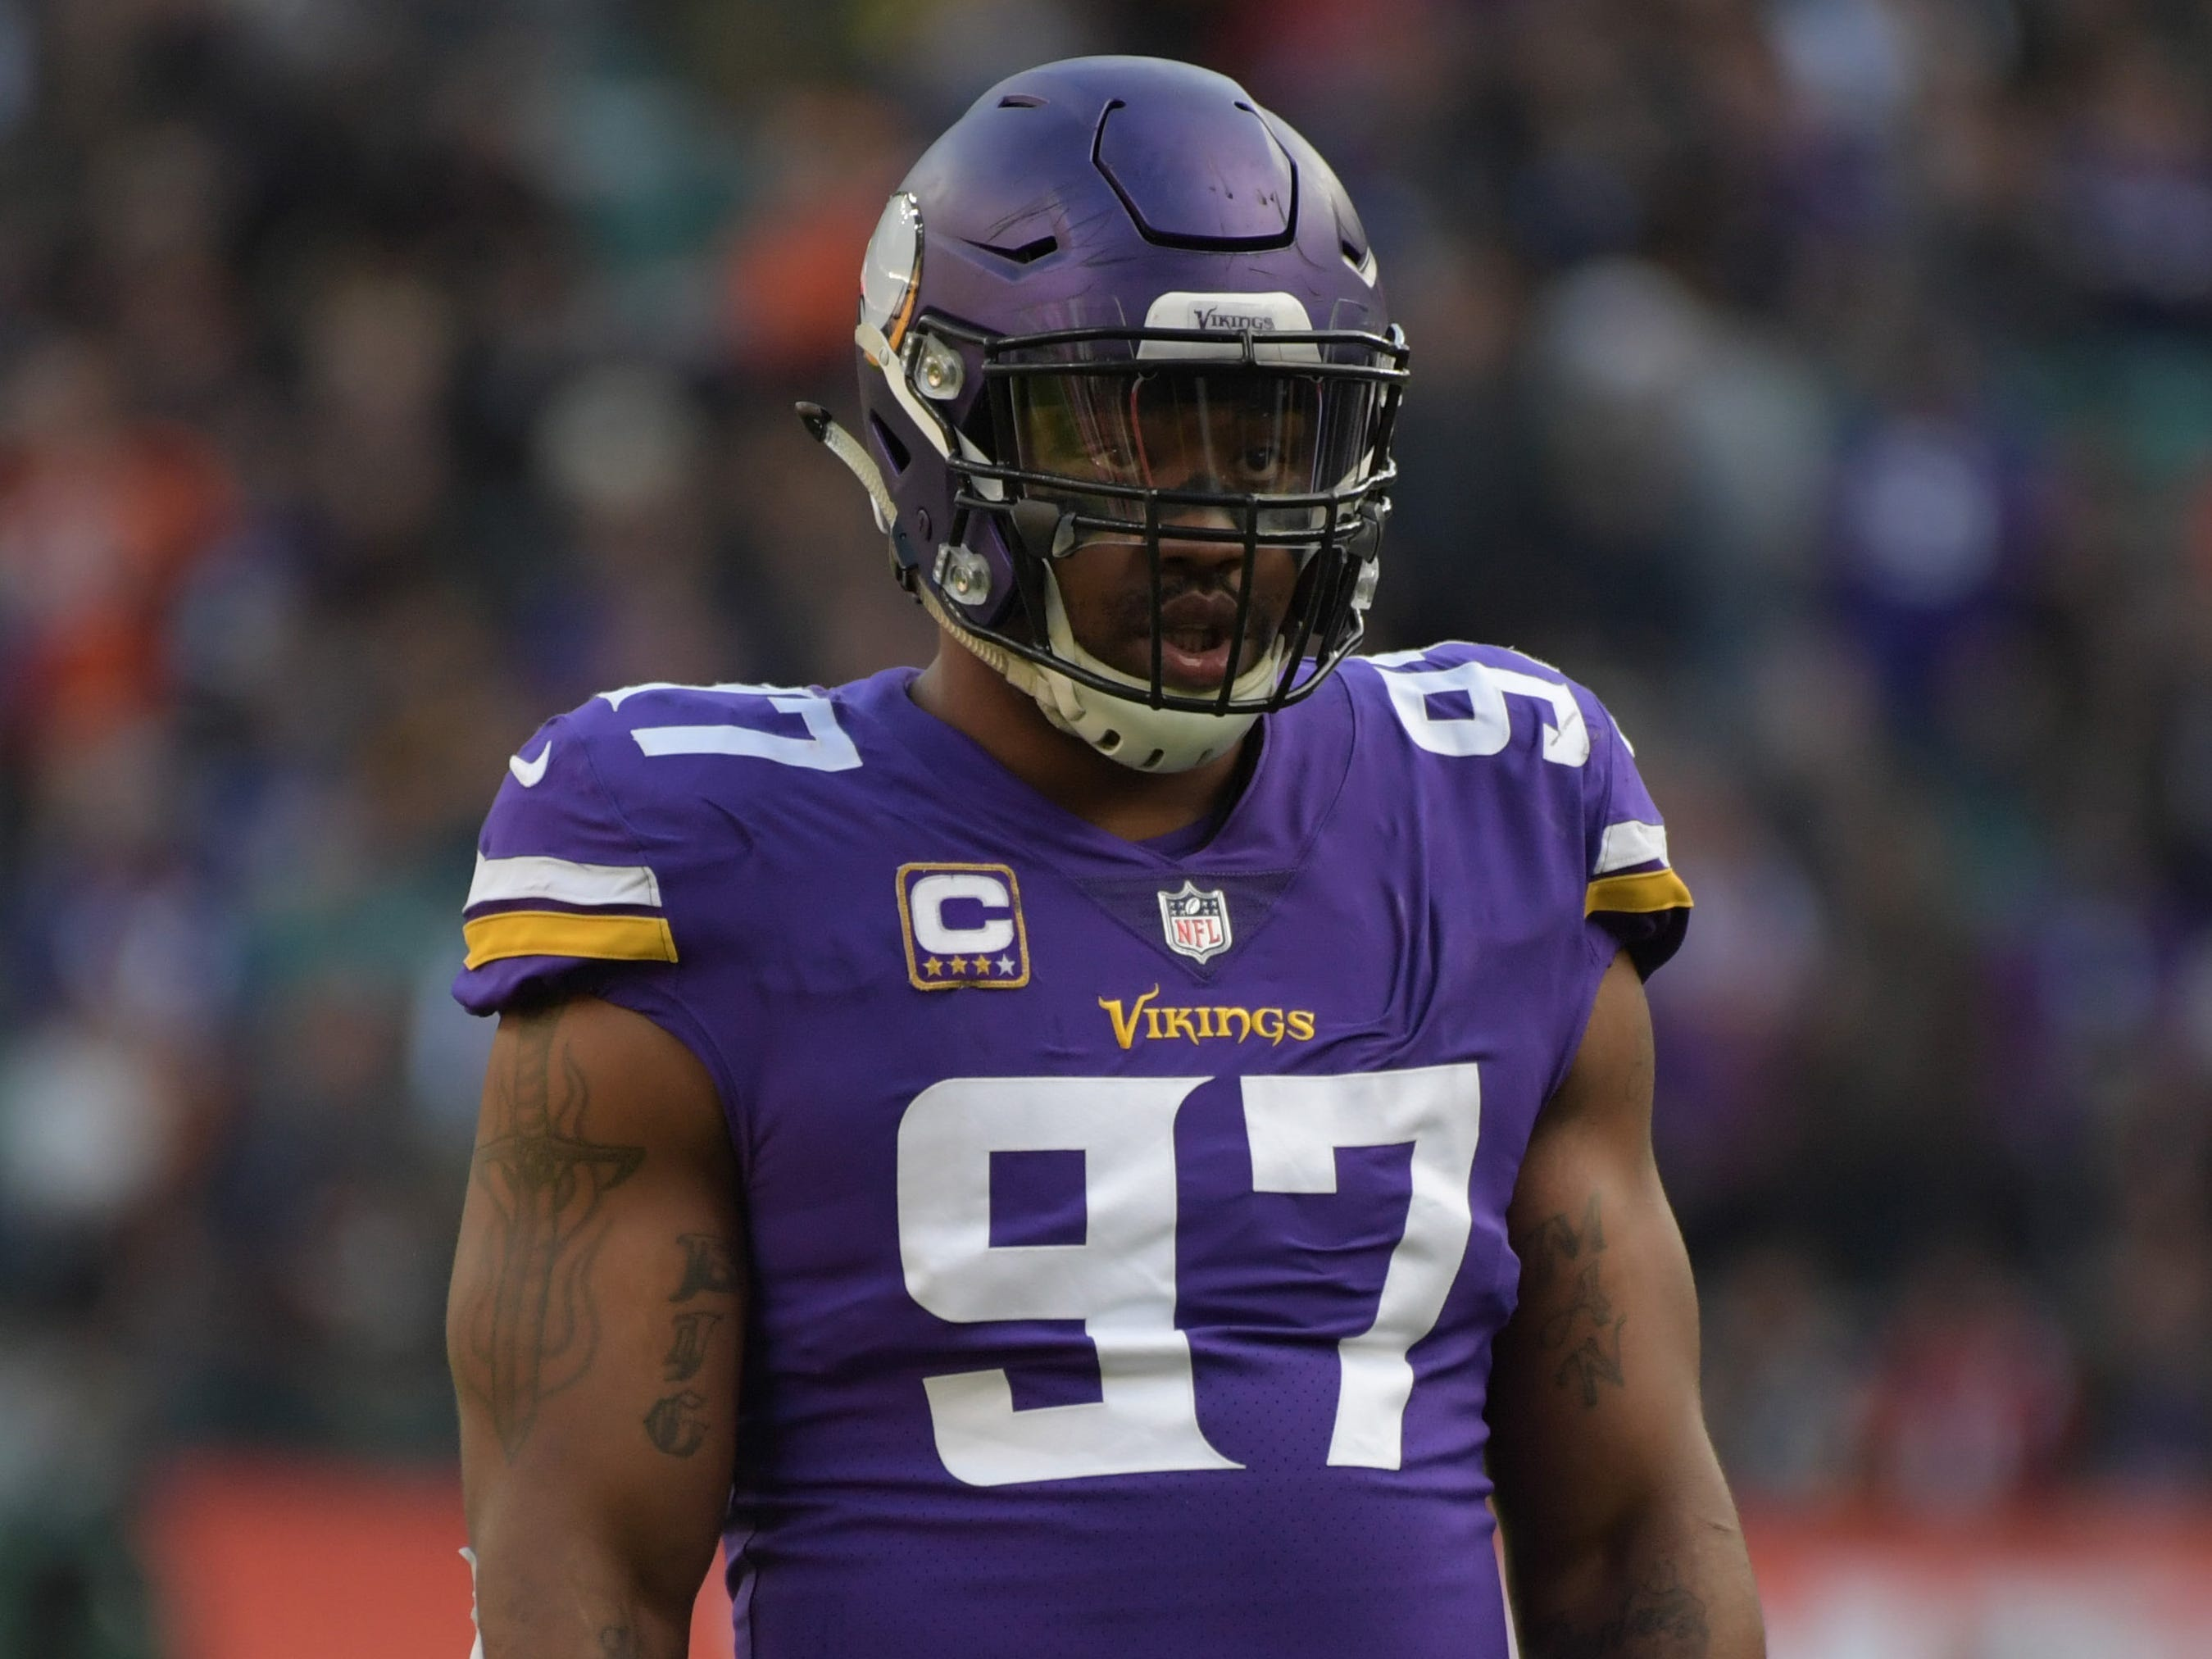 Vikings' Everson Griffen admits on Instagram that he's working through 'personal issues'